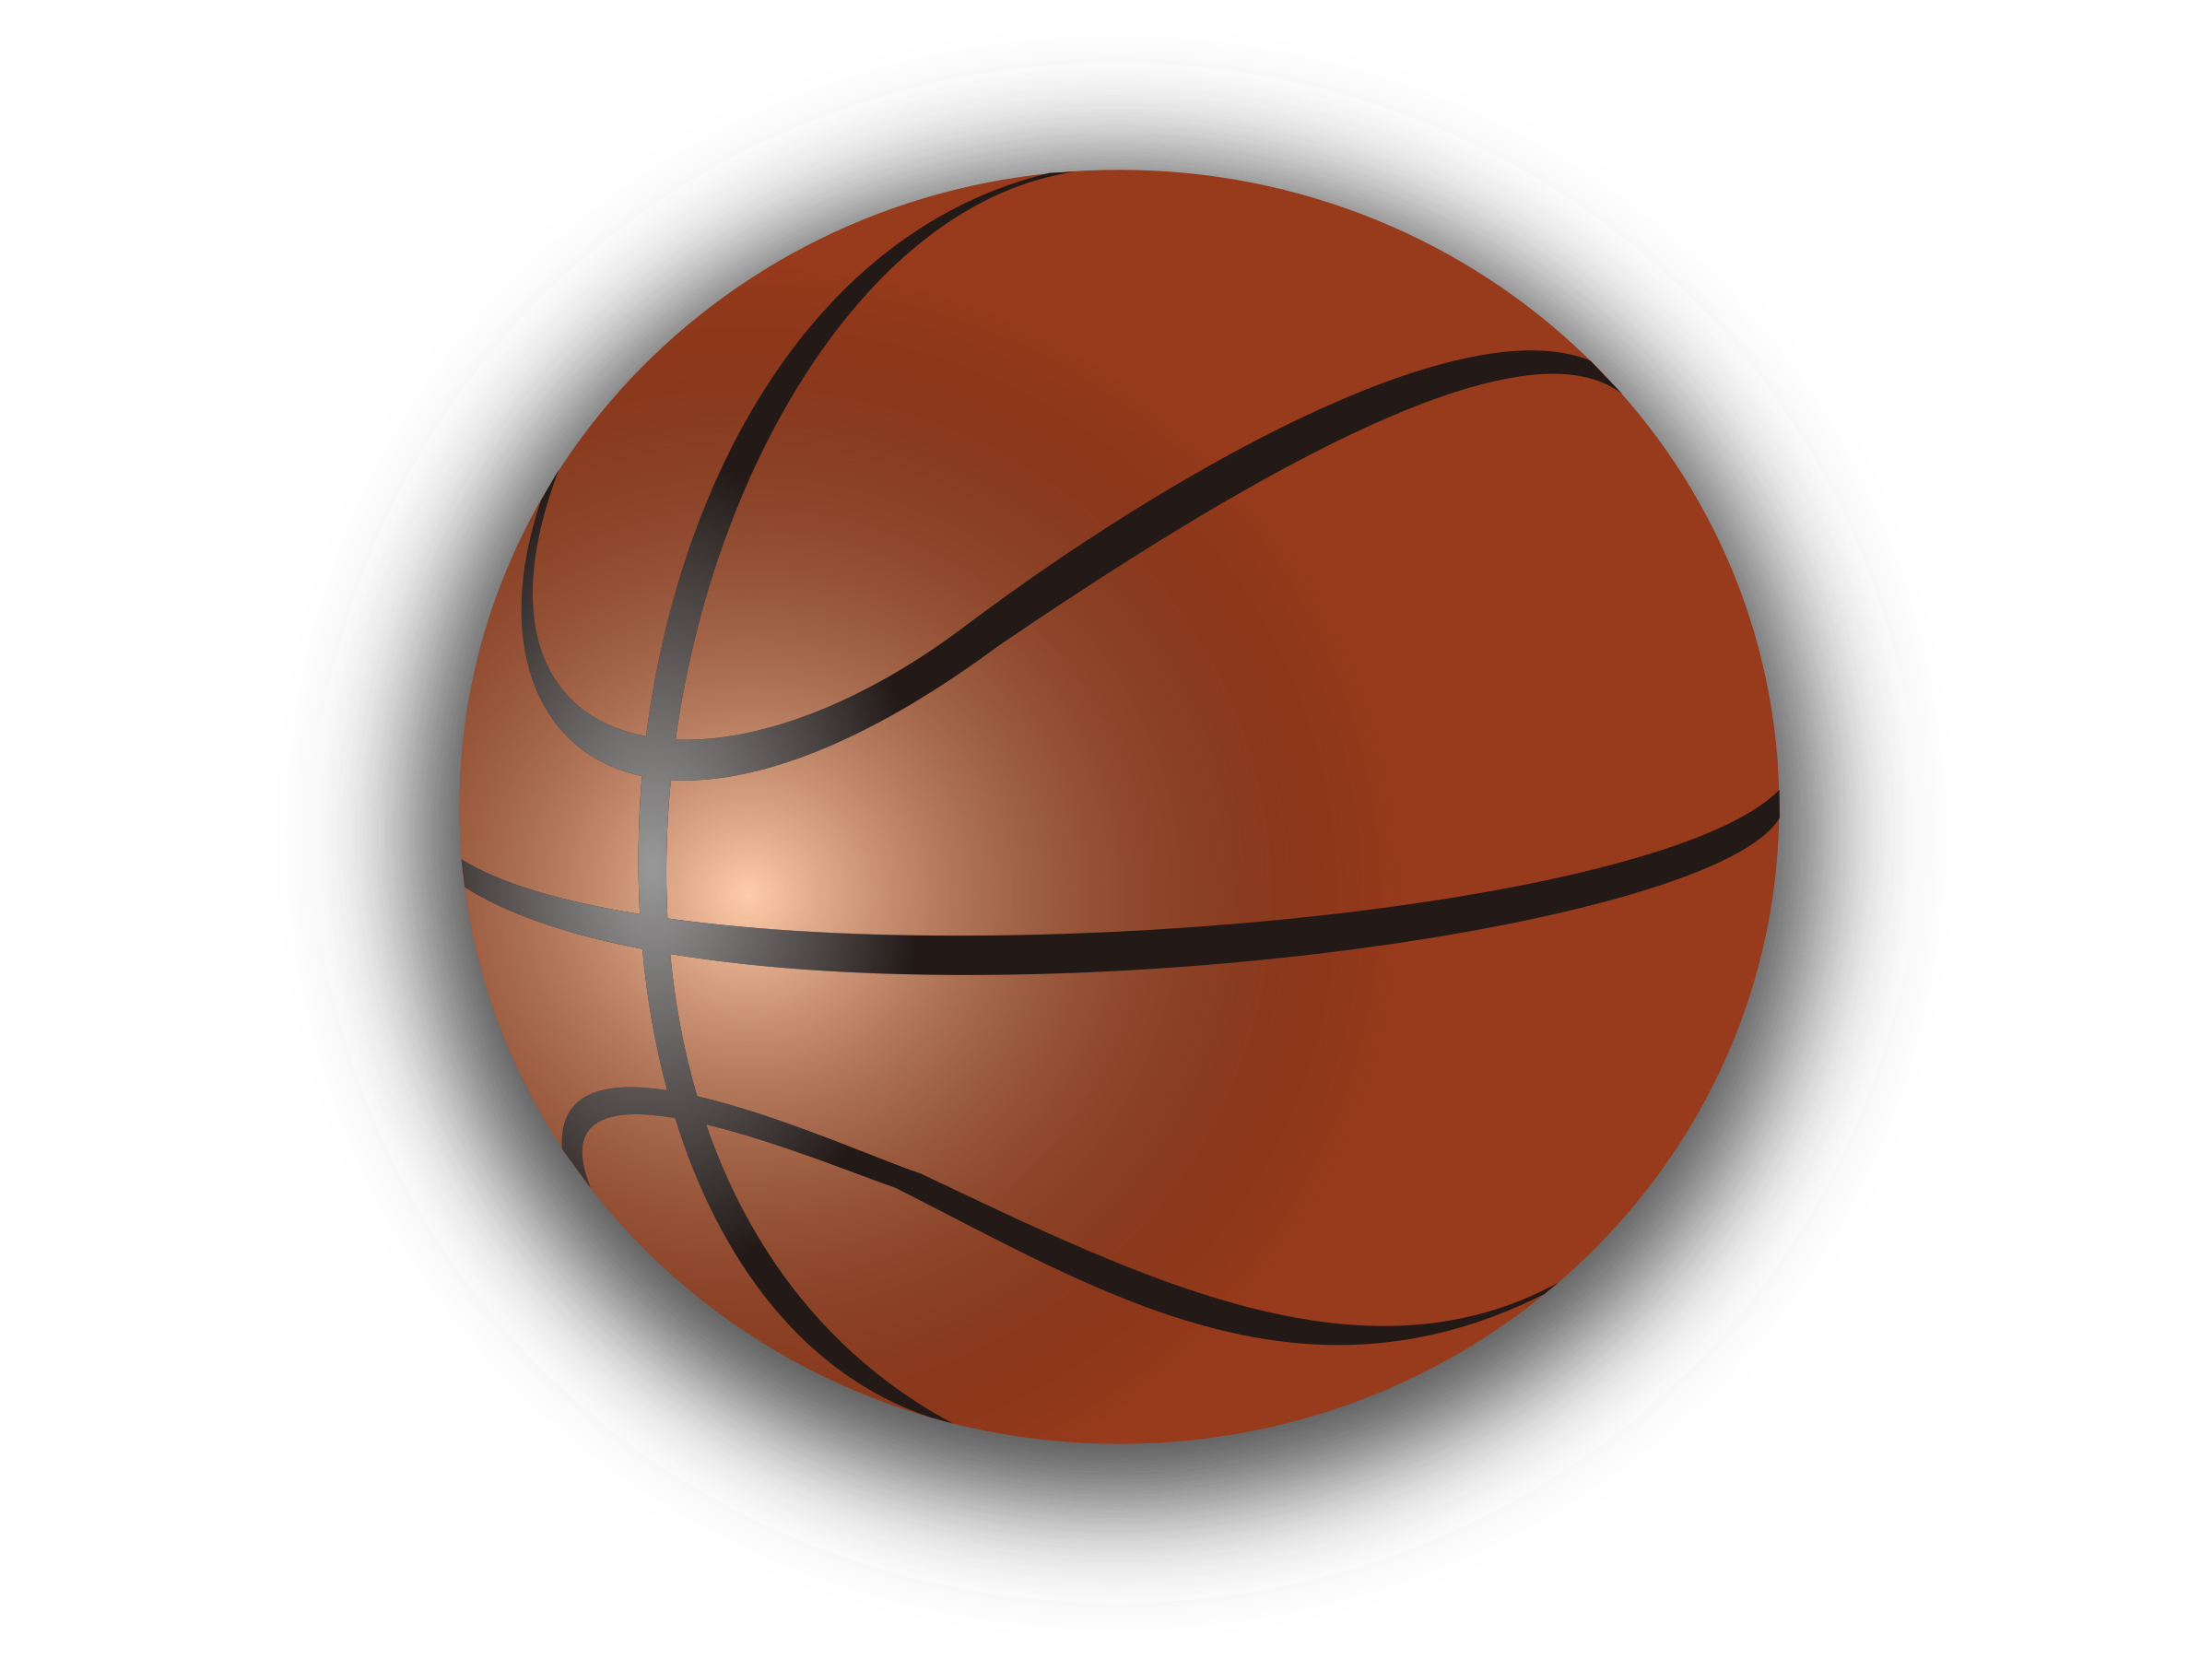 PNG File Name: Sports Basketball PNG - Basketball PNG